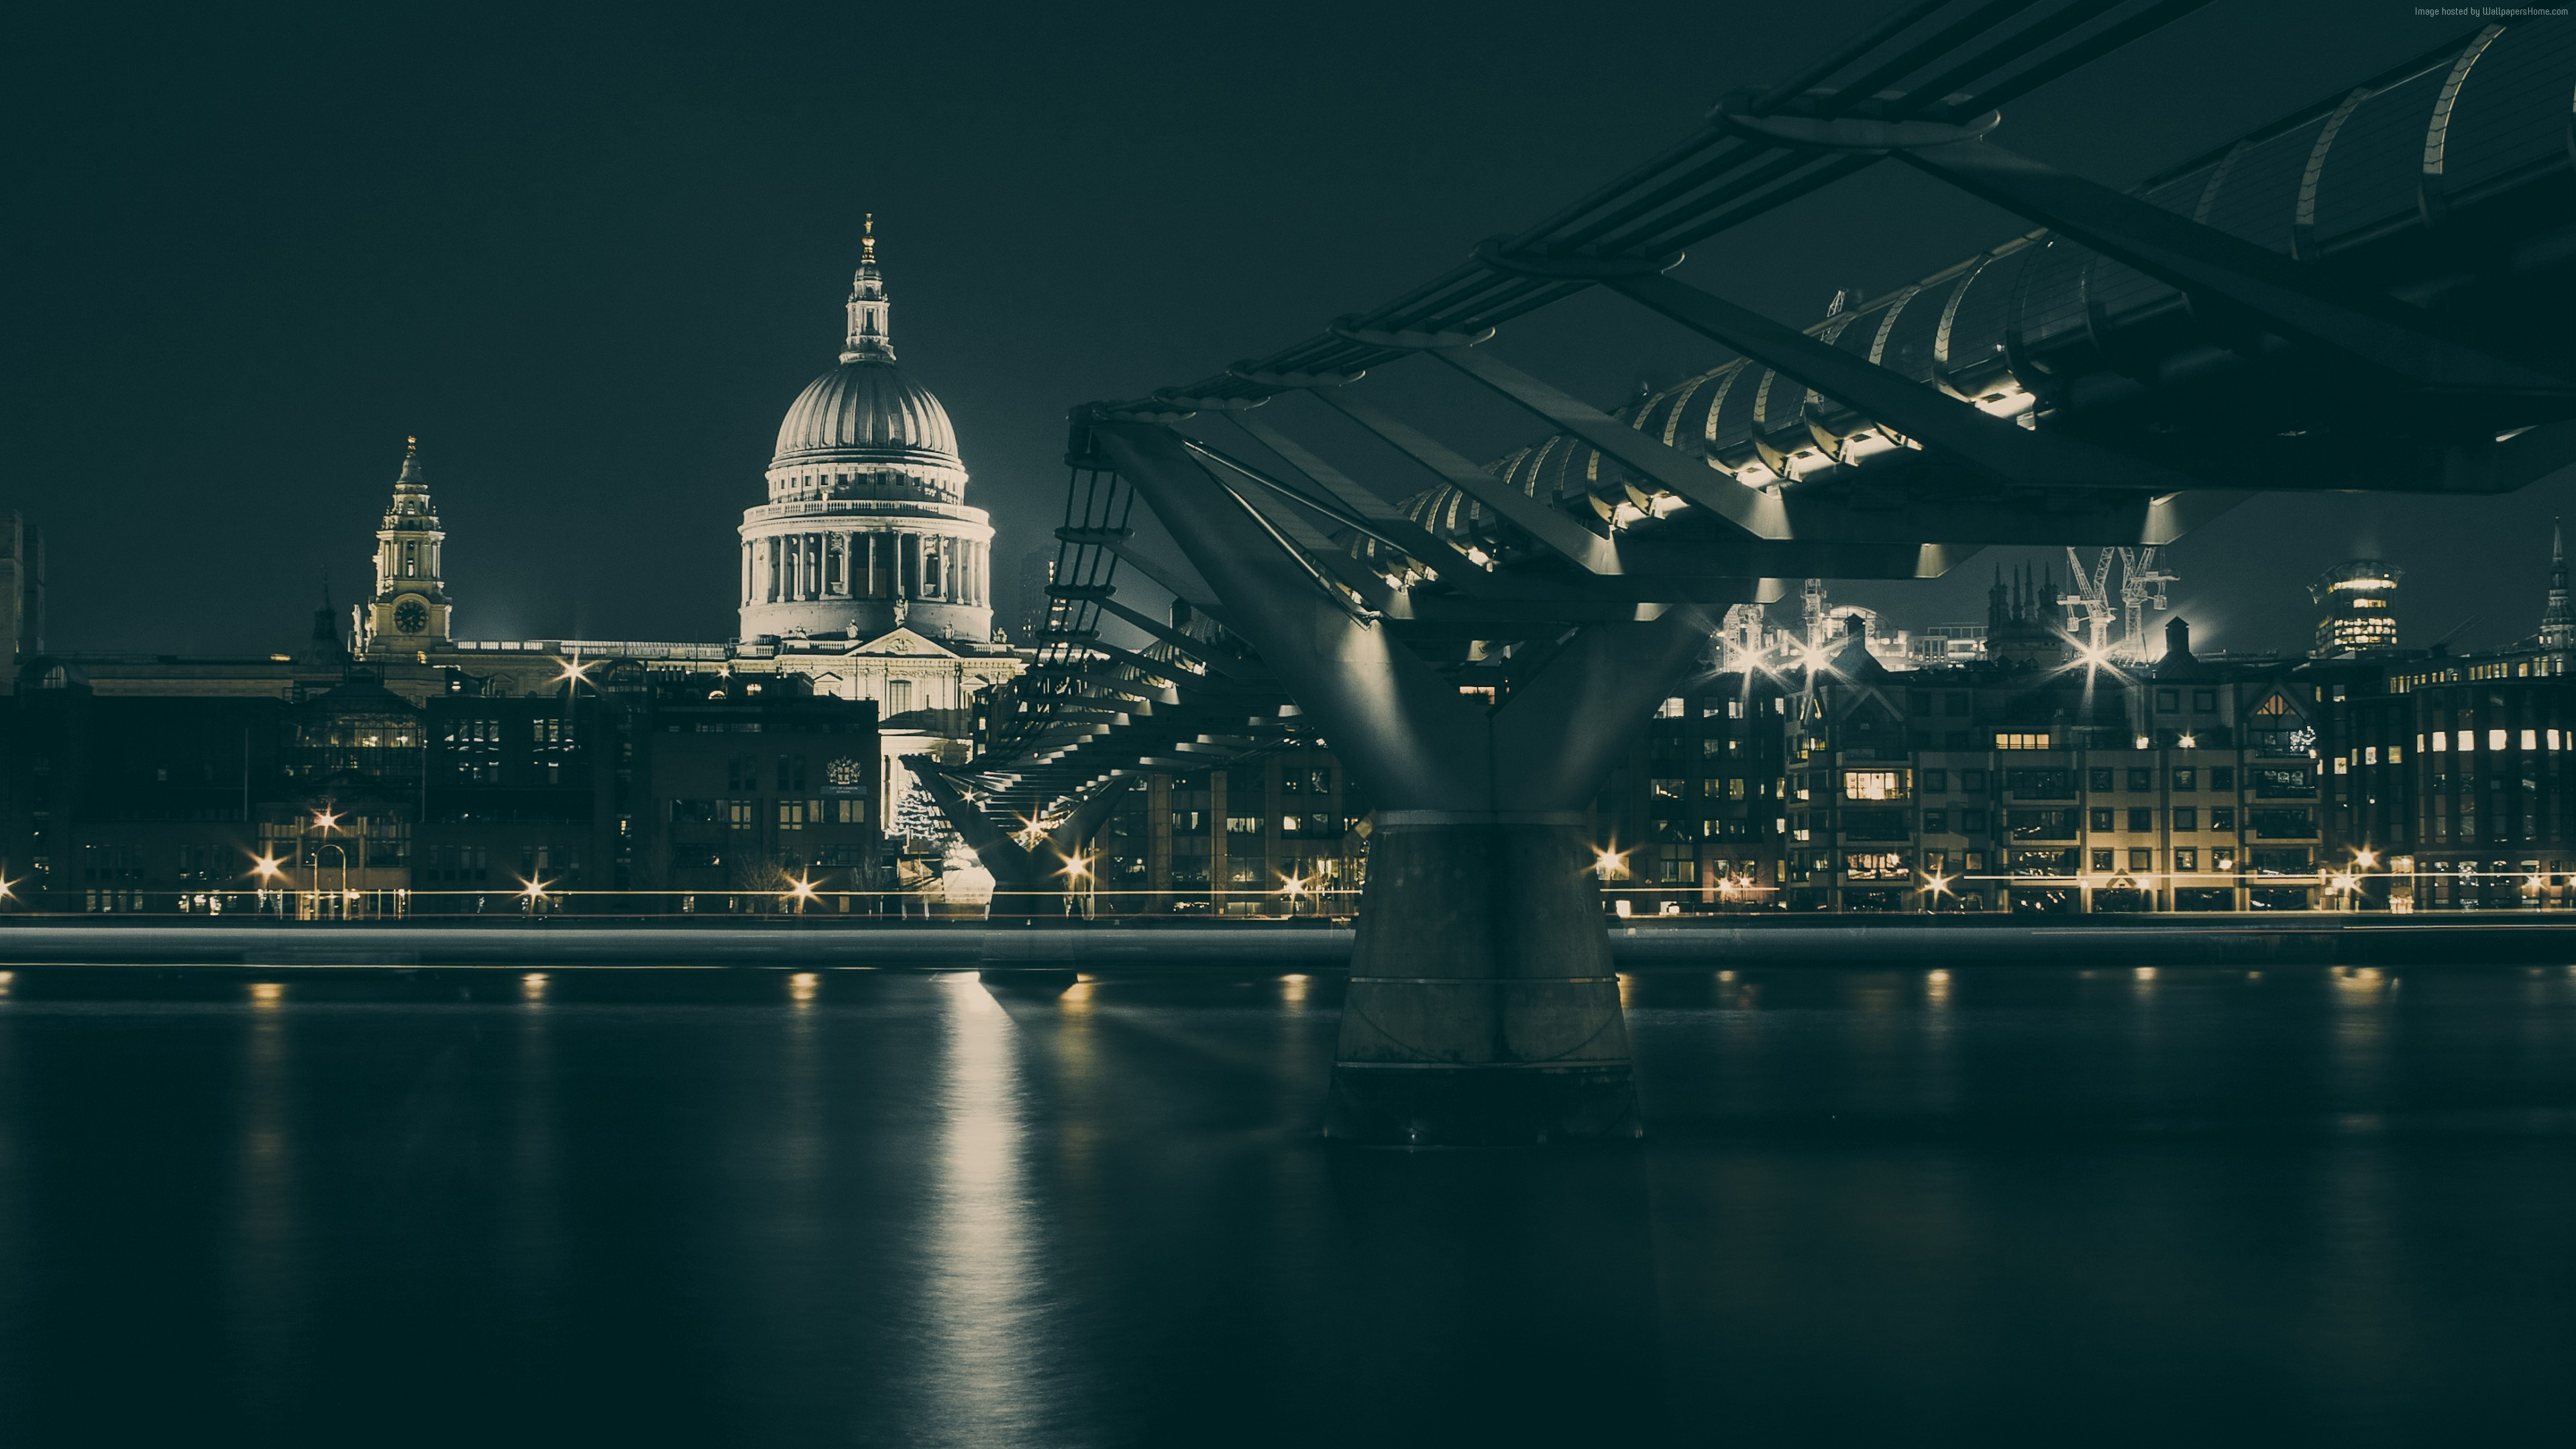 Wallpaper UK, bridge, night, river, Architecture